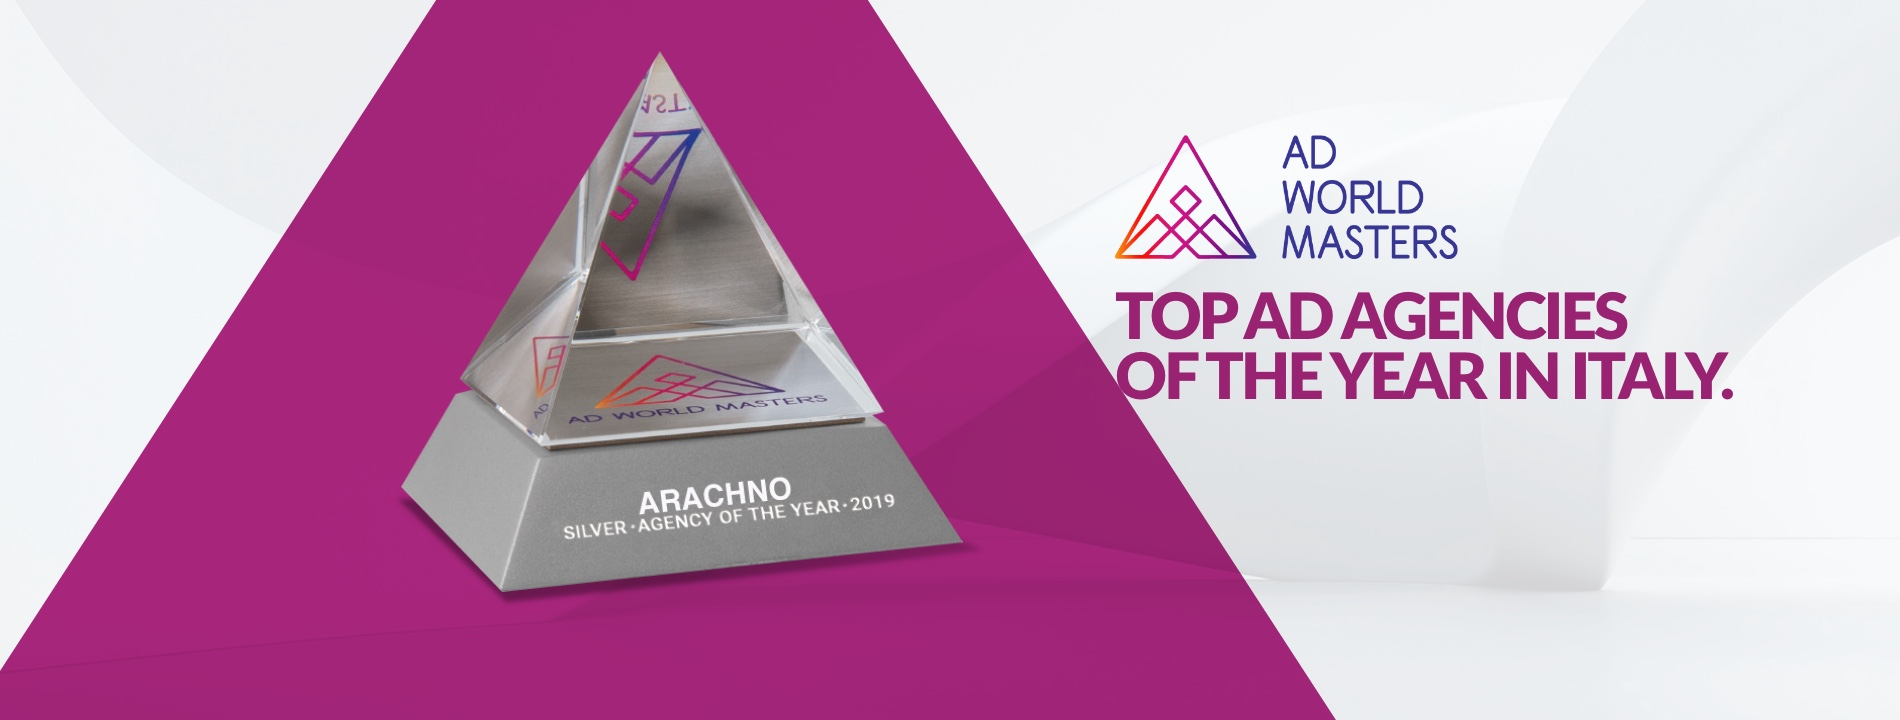 Arachno - Award Top AD Agencies of the Year in Italy